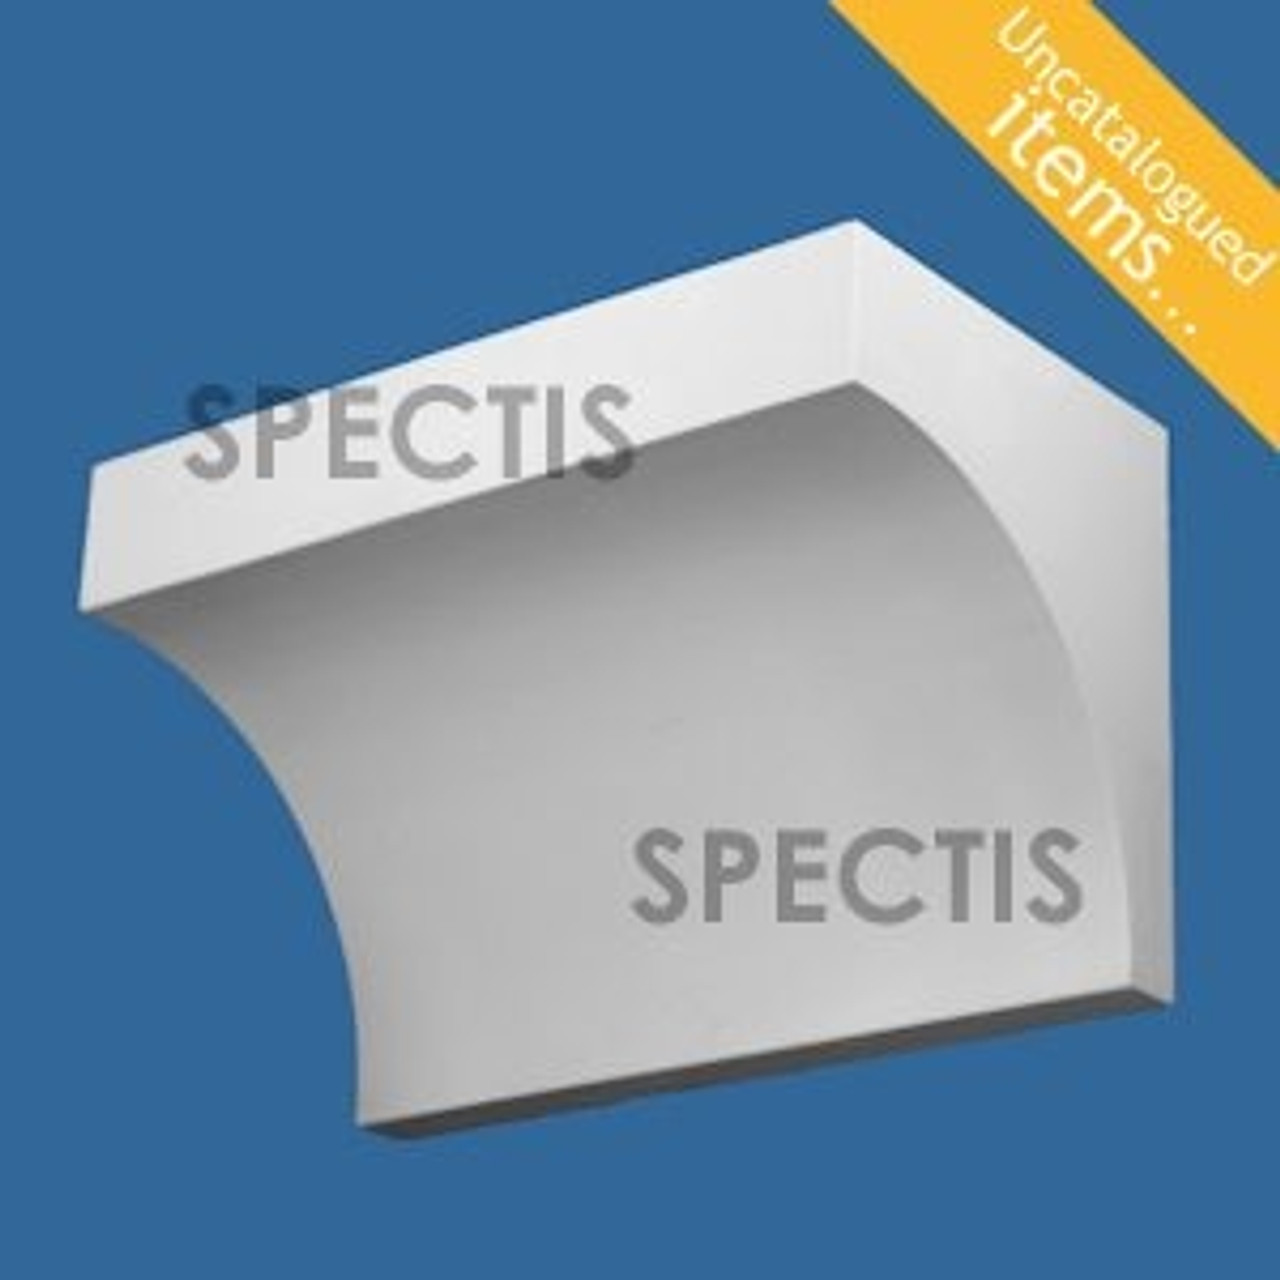 """BL3021 Spectis Eave Block or Bracket 17.75""""W x 11""""H x 9.75"""" Projection"""